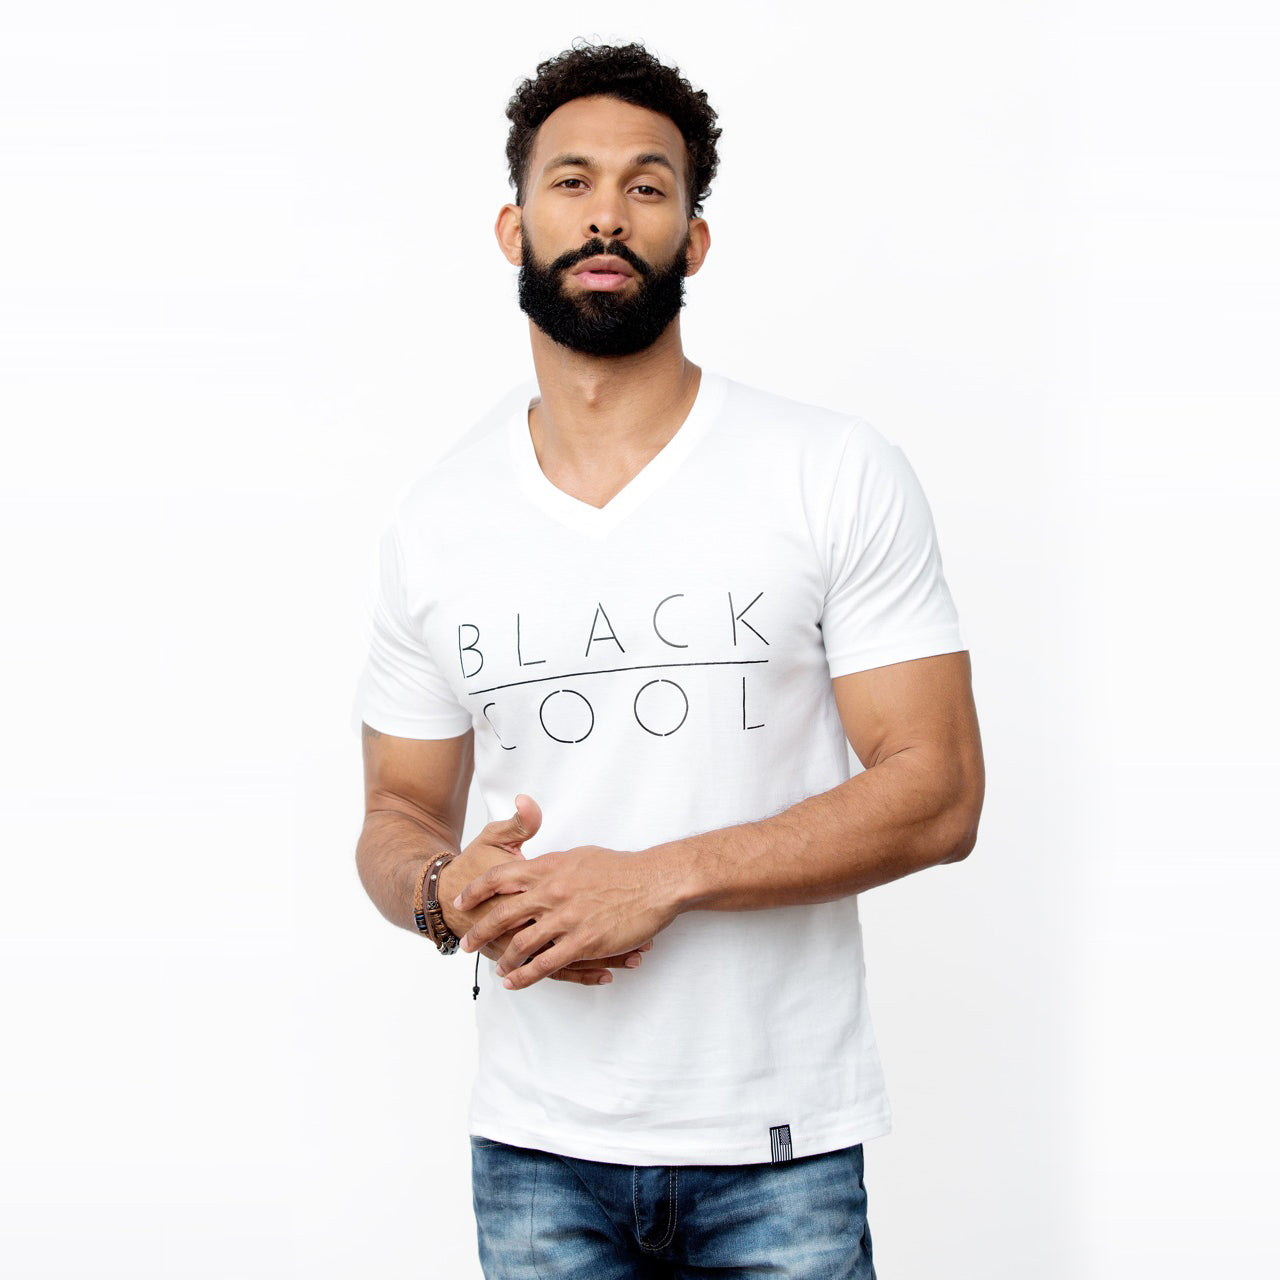 BlackCool - Classic Vintage Tee - Ultra Premium Apparel & Accessories